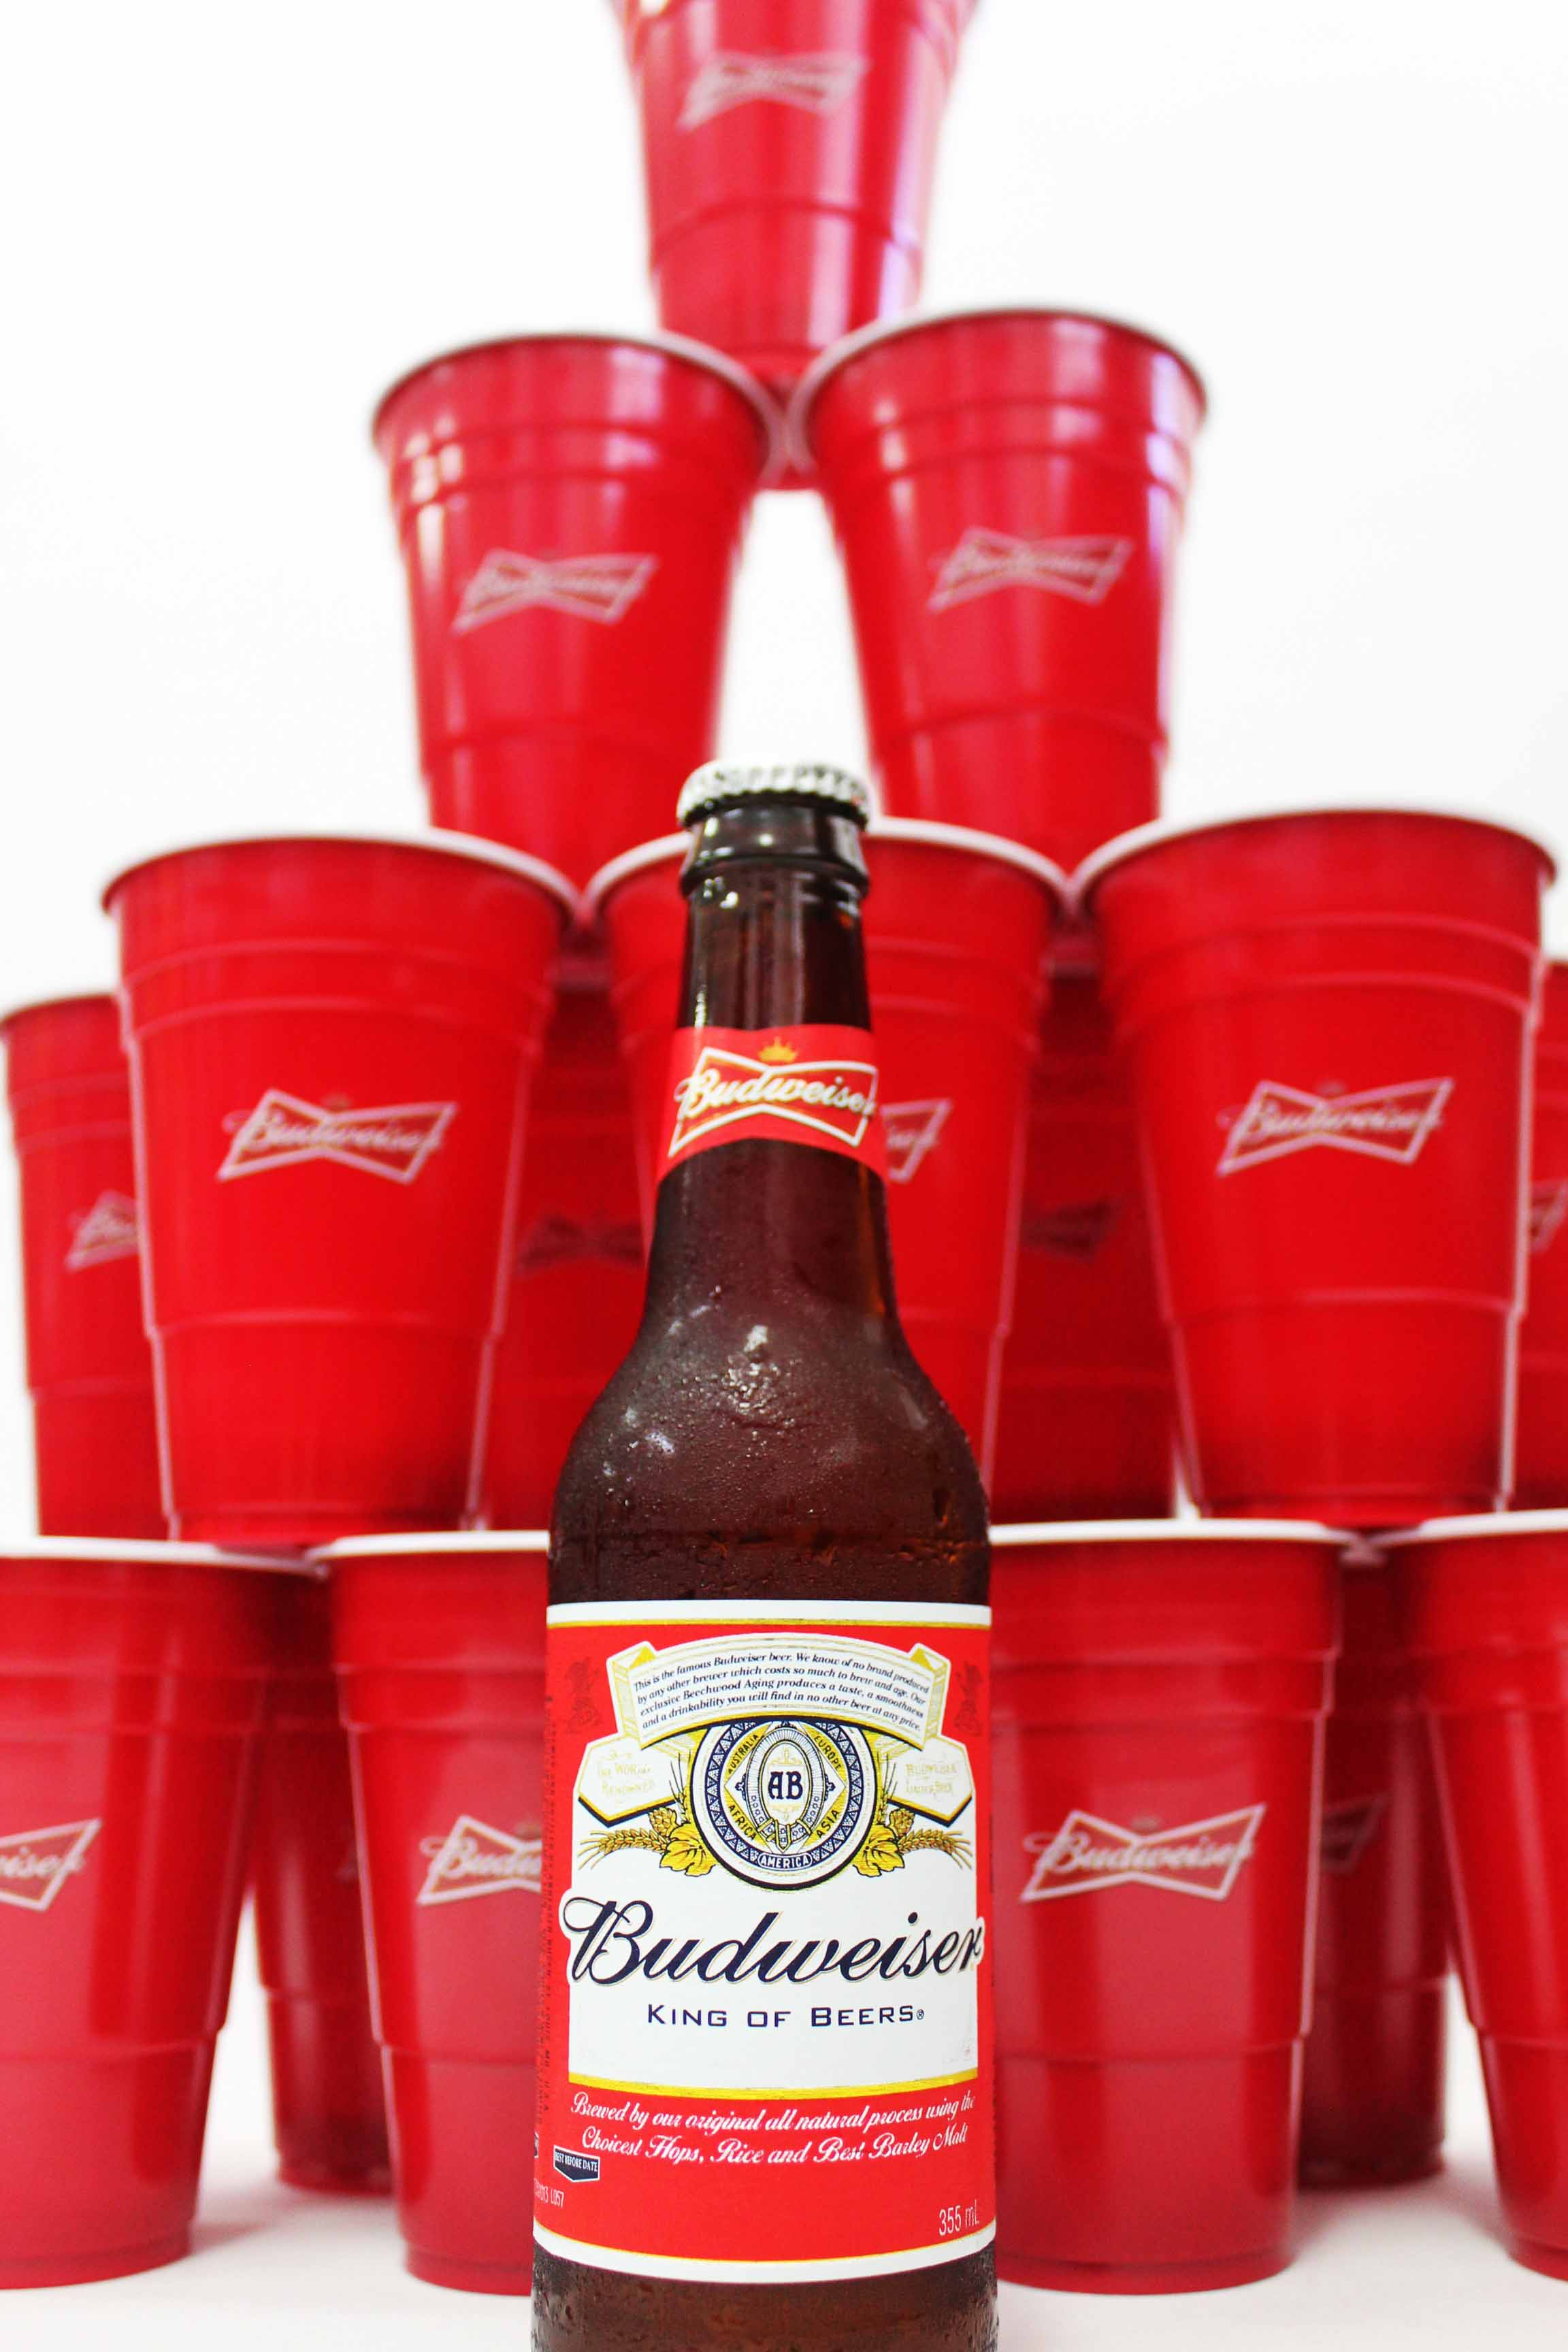 Budweiser custom red cups